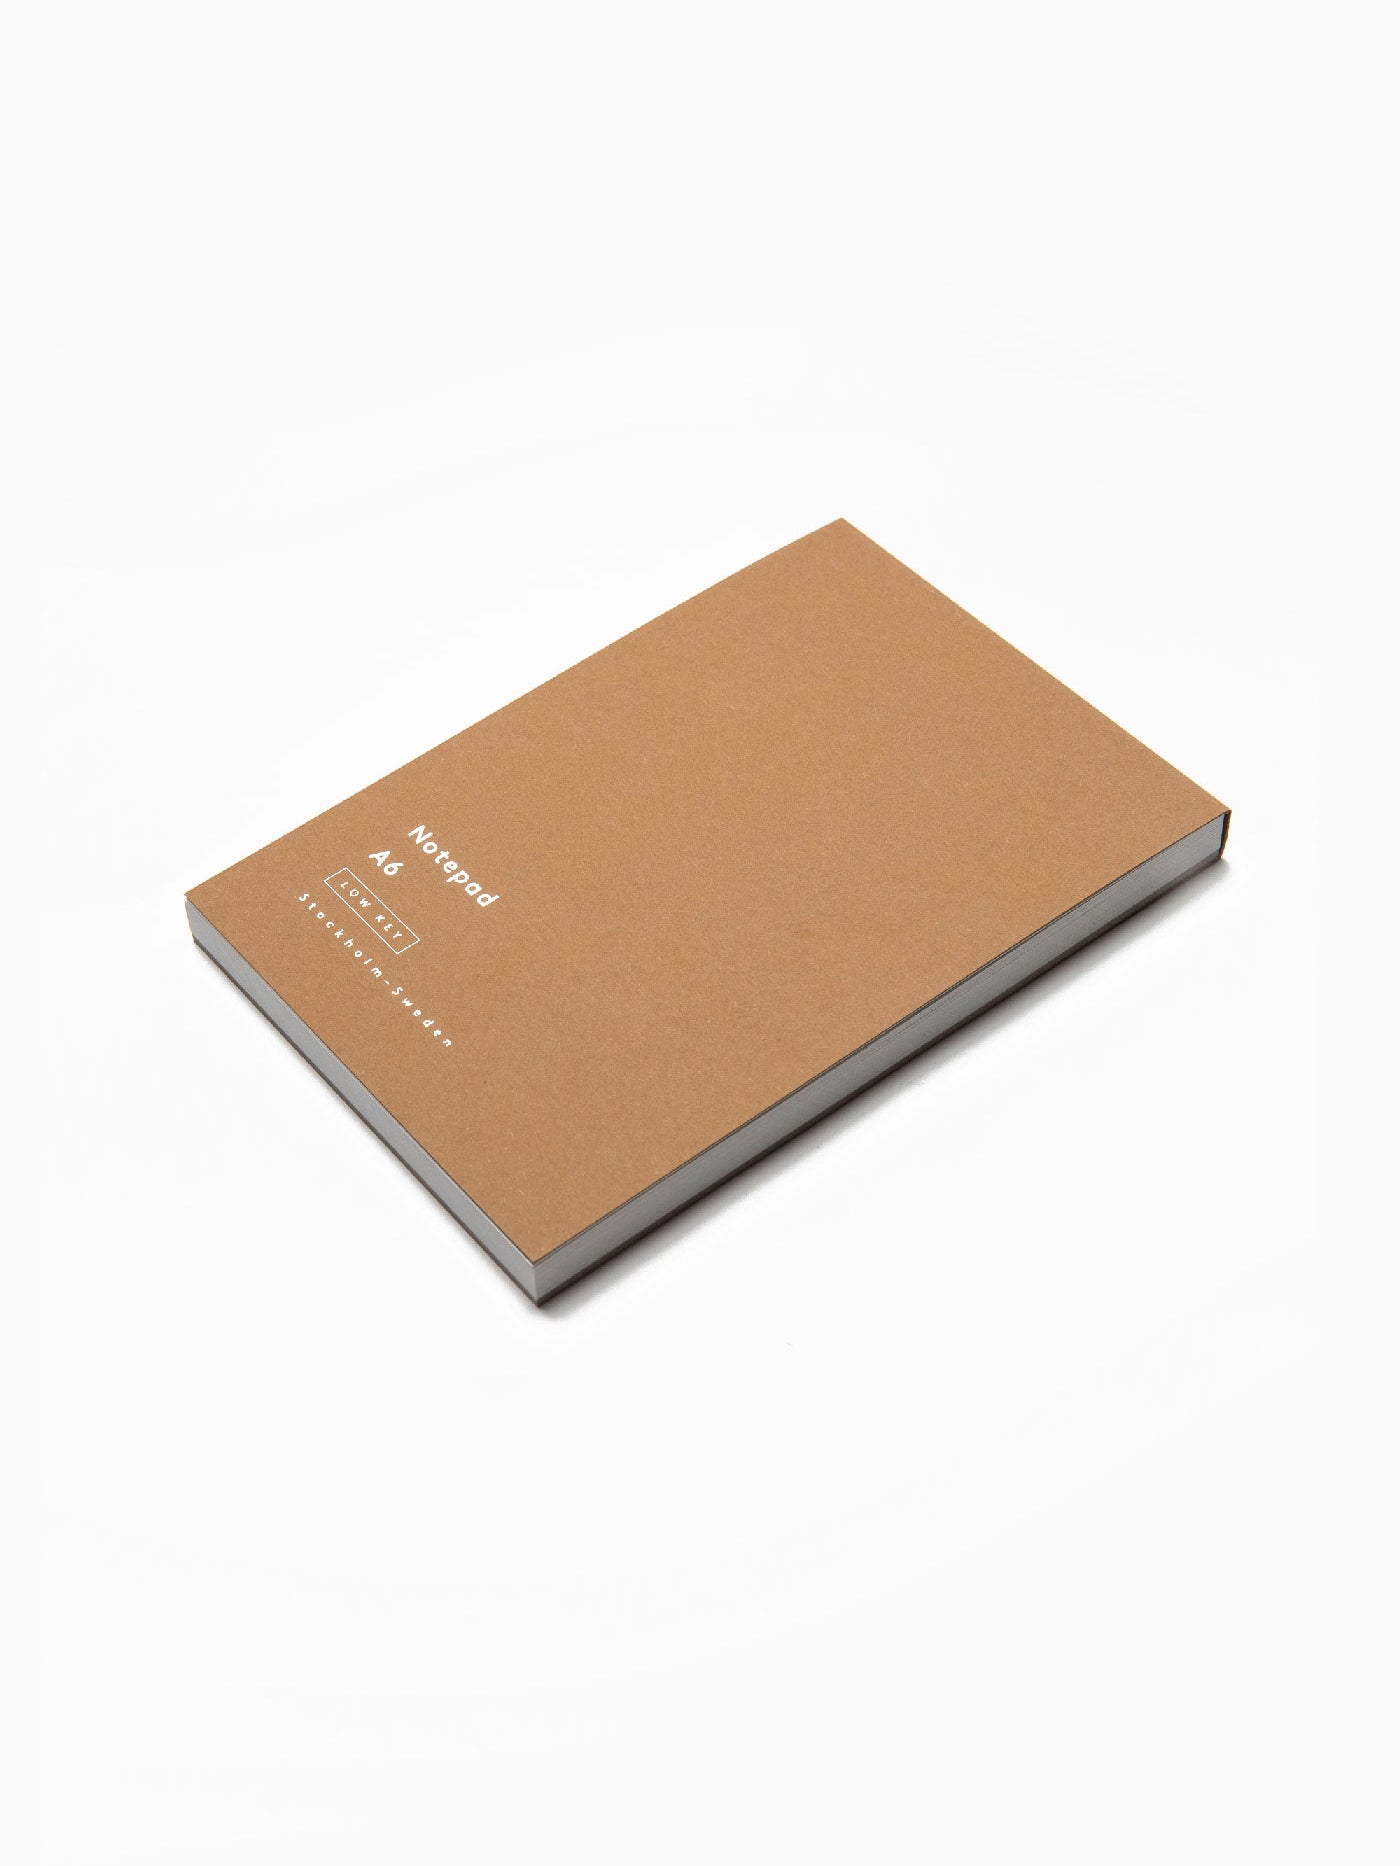 Notepad A6 Low key goods